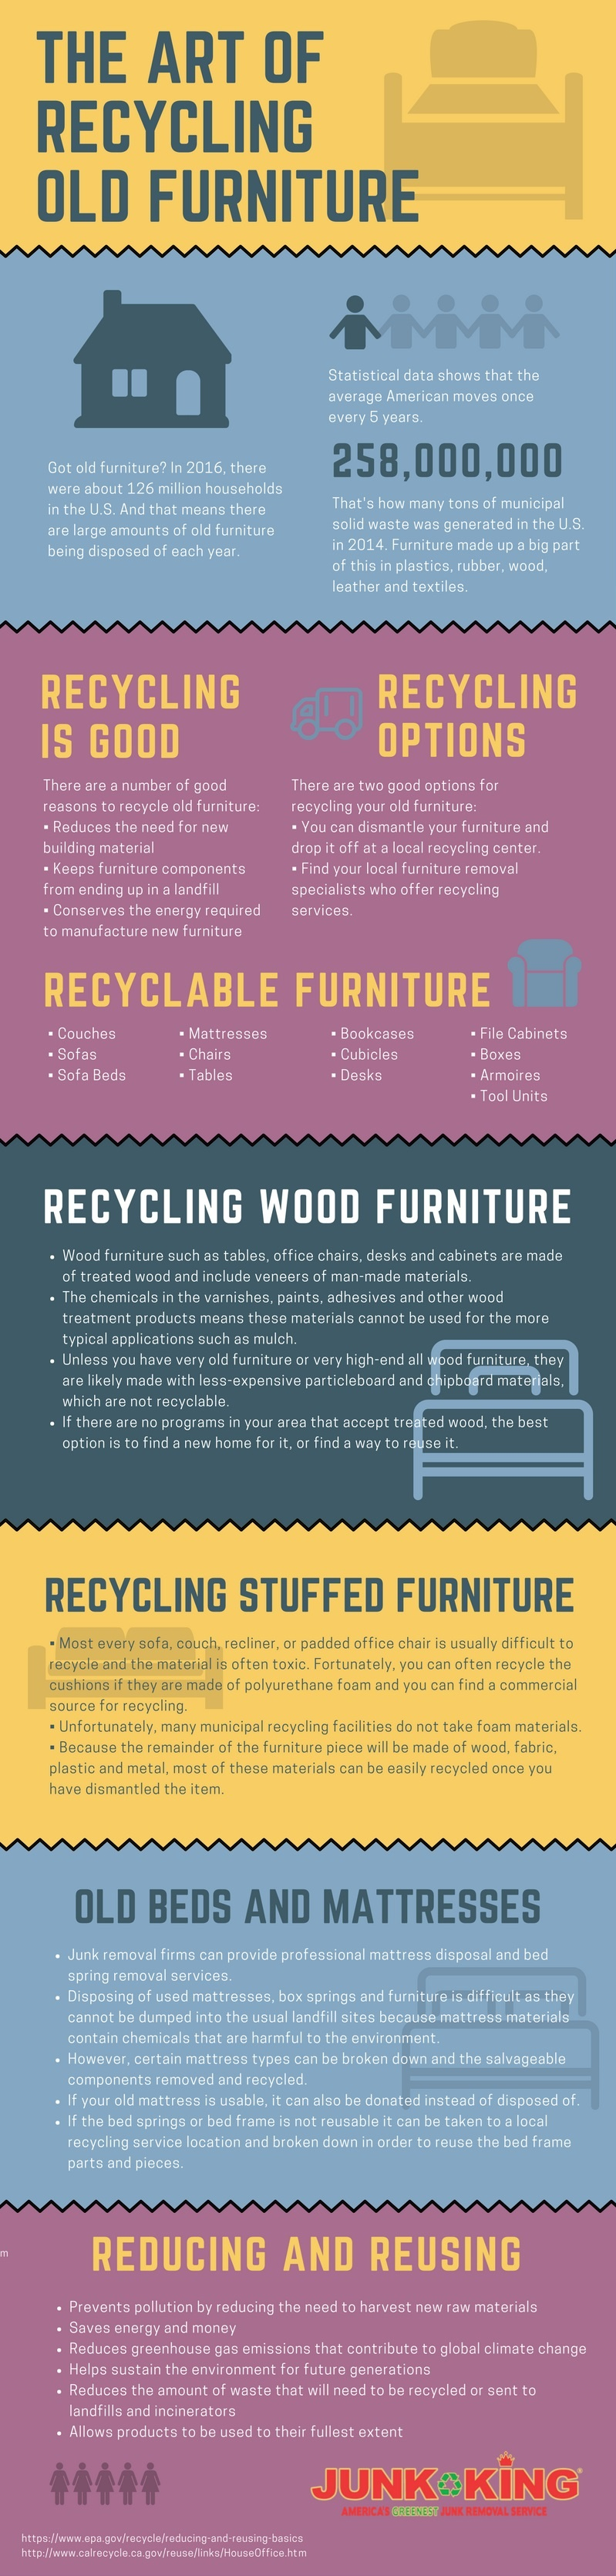 recycling_old_furniture.jpg